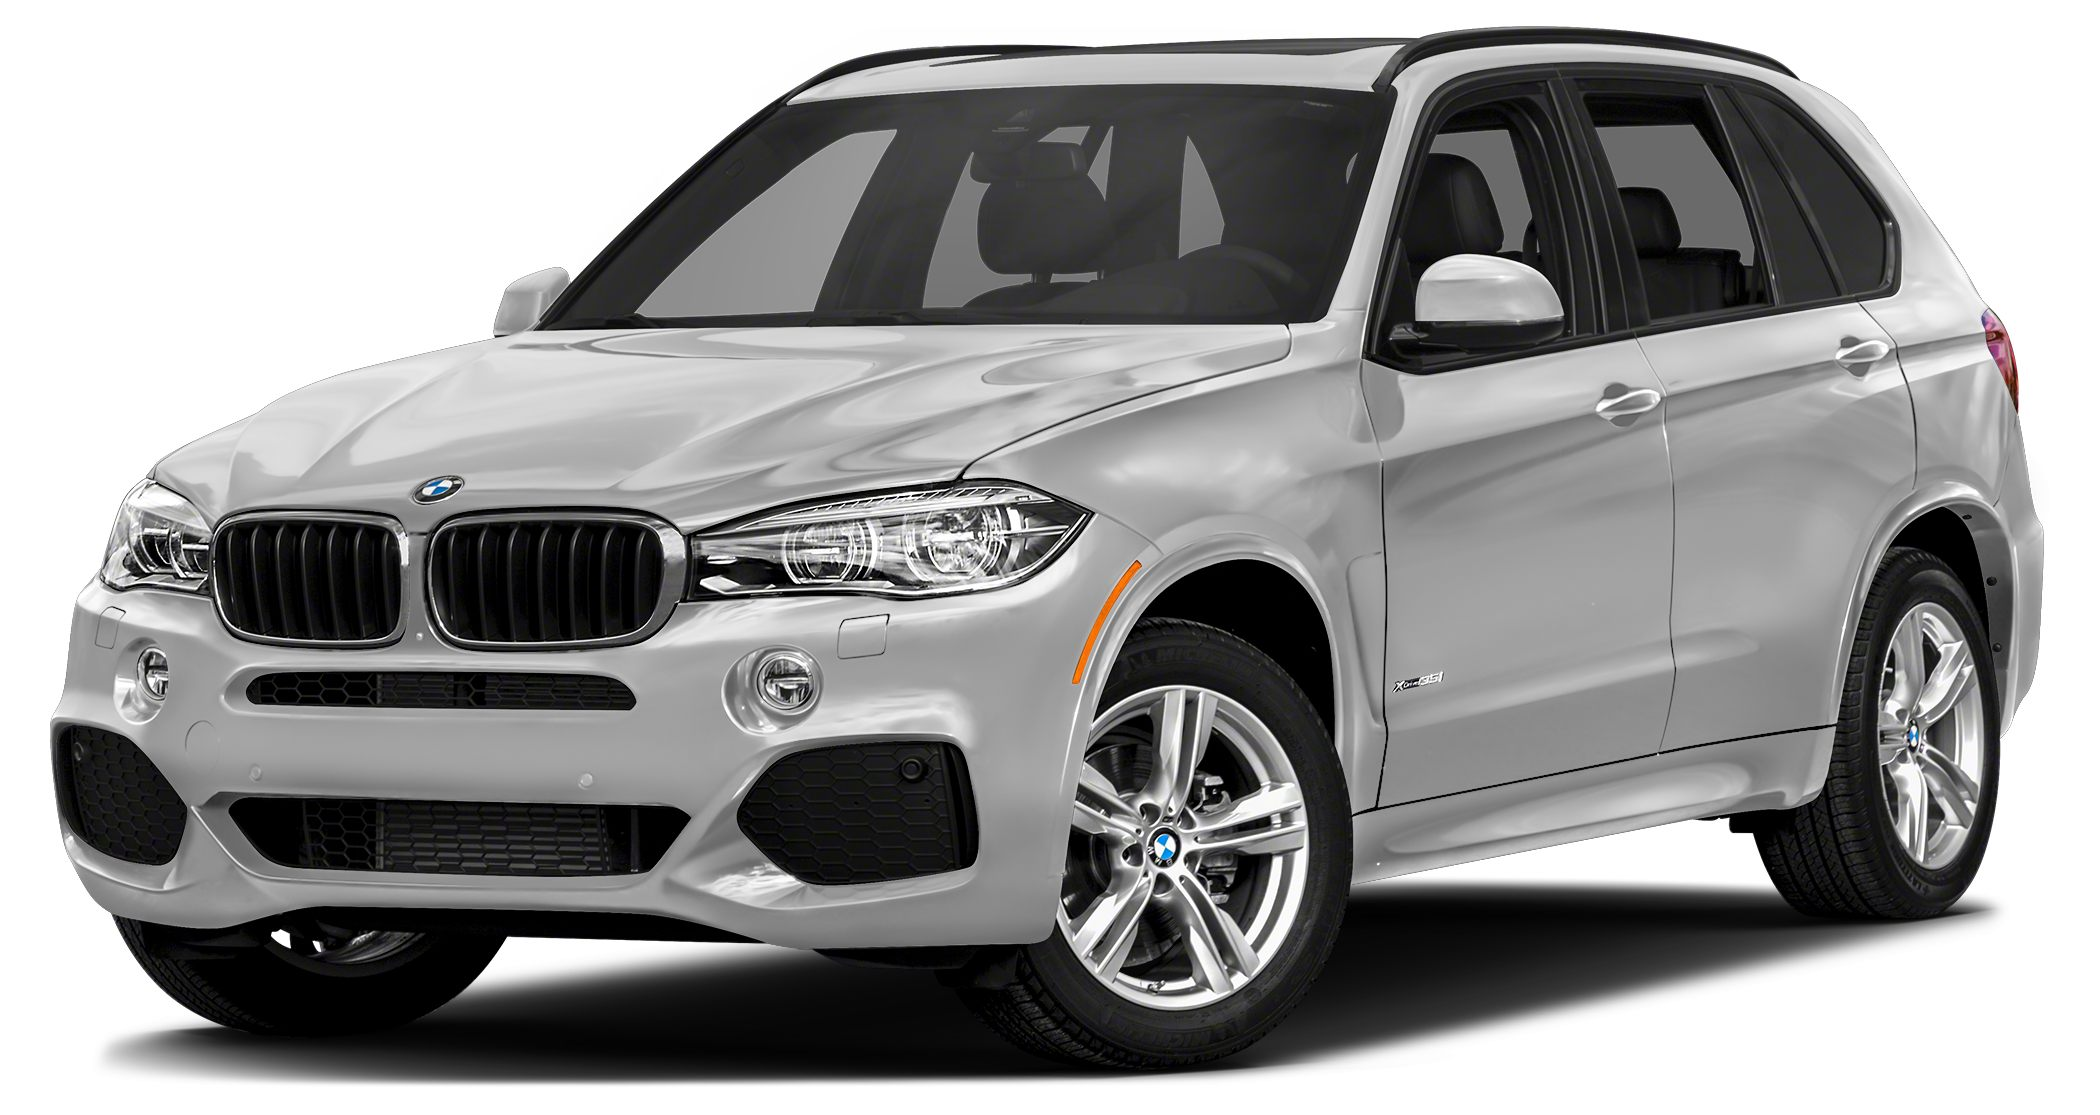 2017 BMW X5 sDrive35i ONLY 5K MILES M SPORT LUXURY SEATING PREMIUM PACKAGE DRIVER ASSISTANCE P